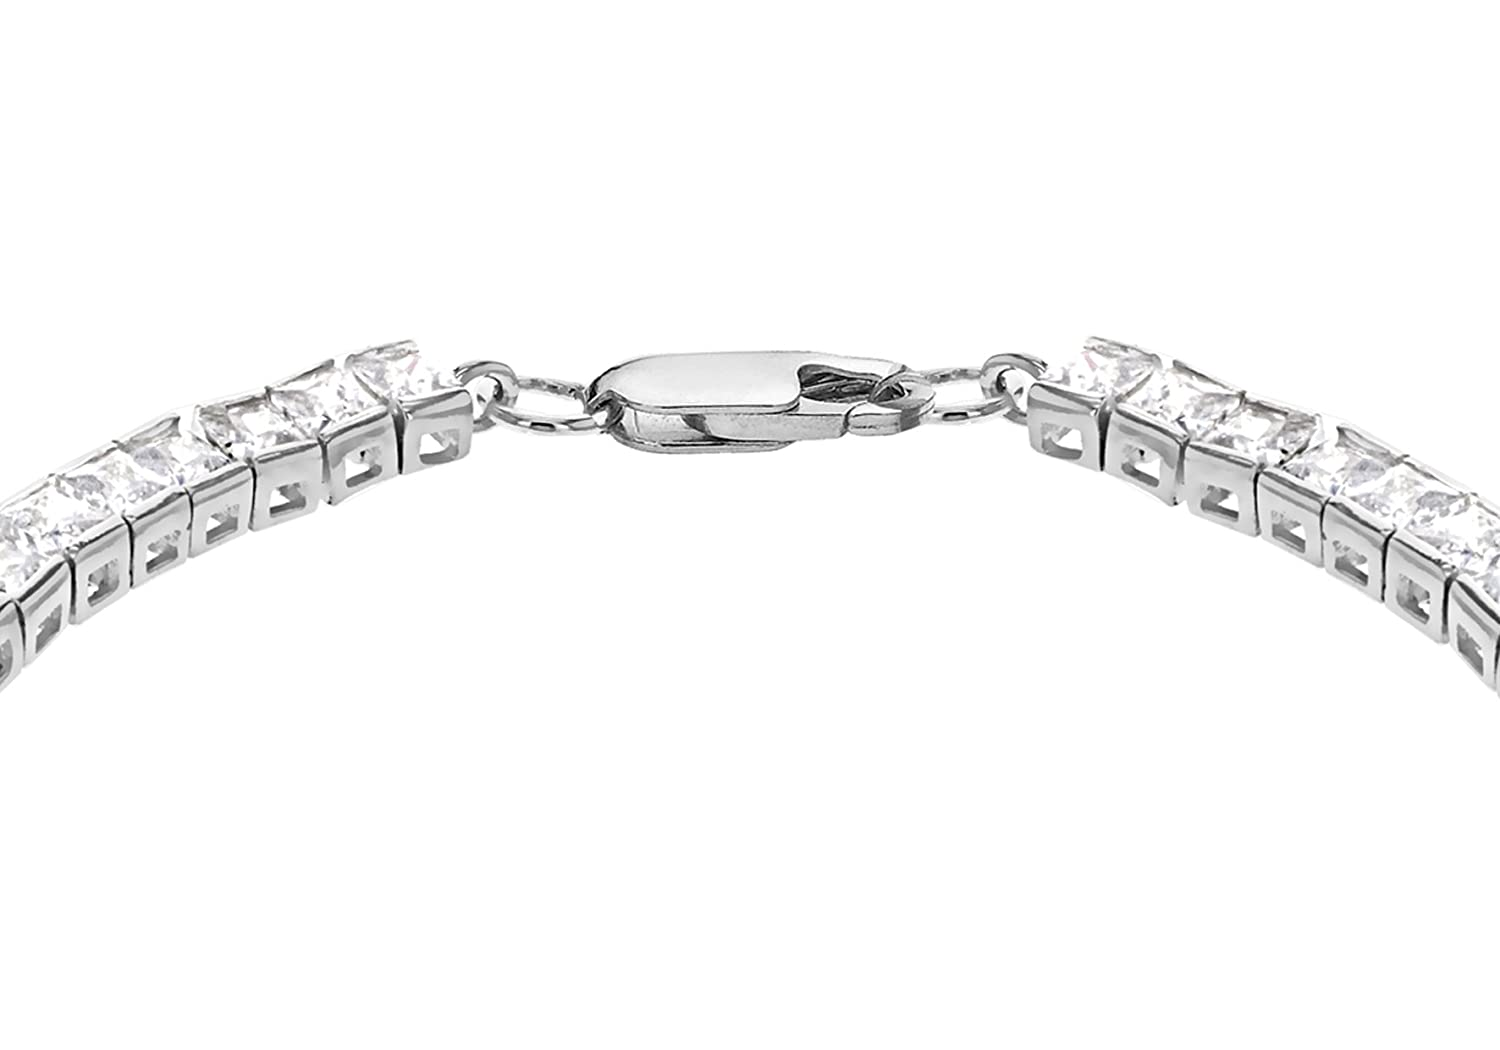 Aoiy Sterling Silver Round Cubic Zirconia Tennis Bracelet for Women and Girls, zhb001bi